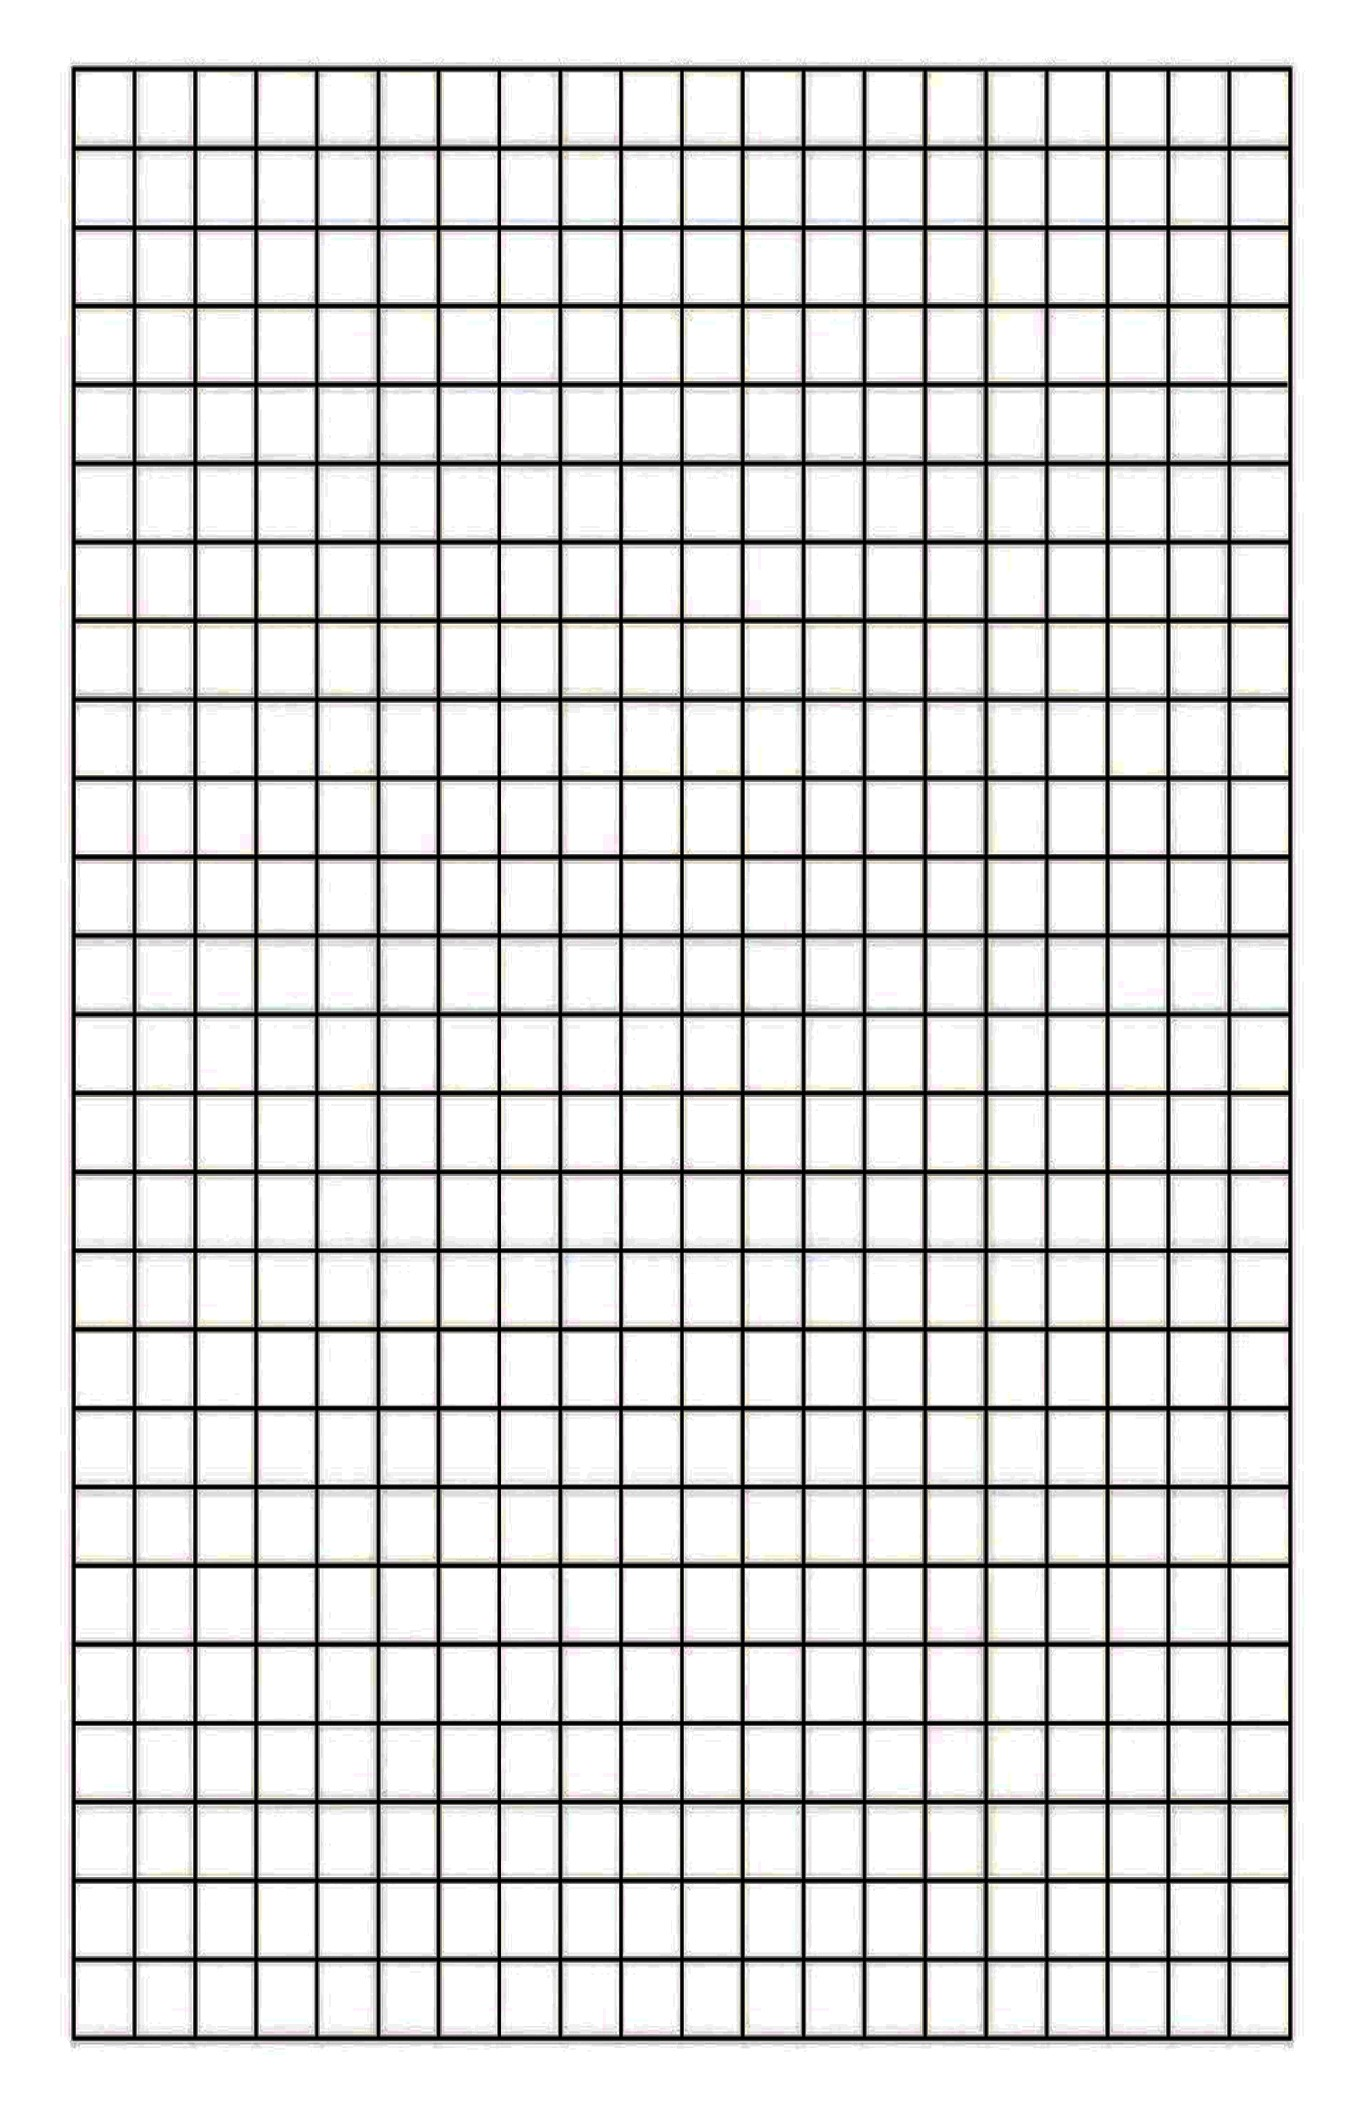 Free Printable Blank Graph Paper